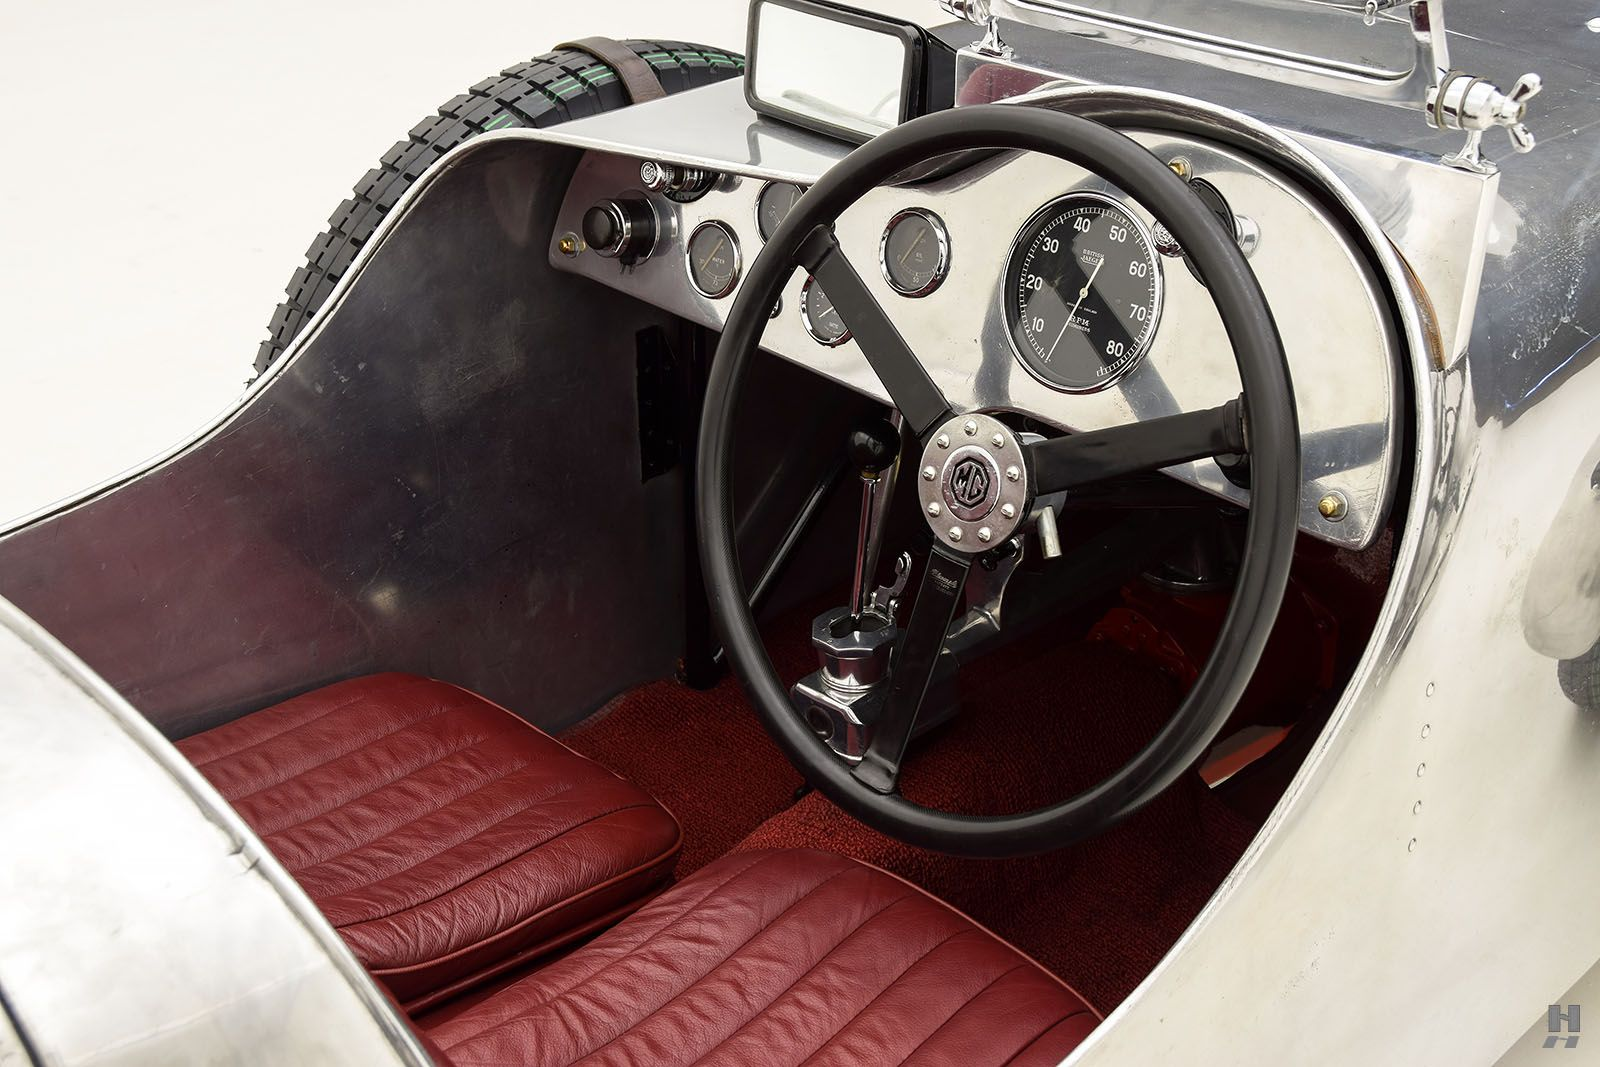 1936 MG PB Roadster Classic Car For Sale | Buy 1936 MG PB Roadster ...